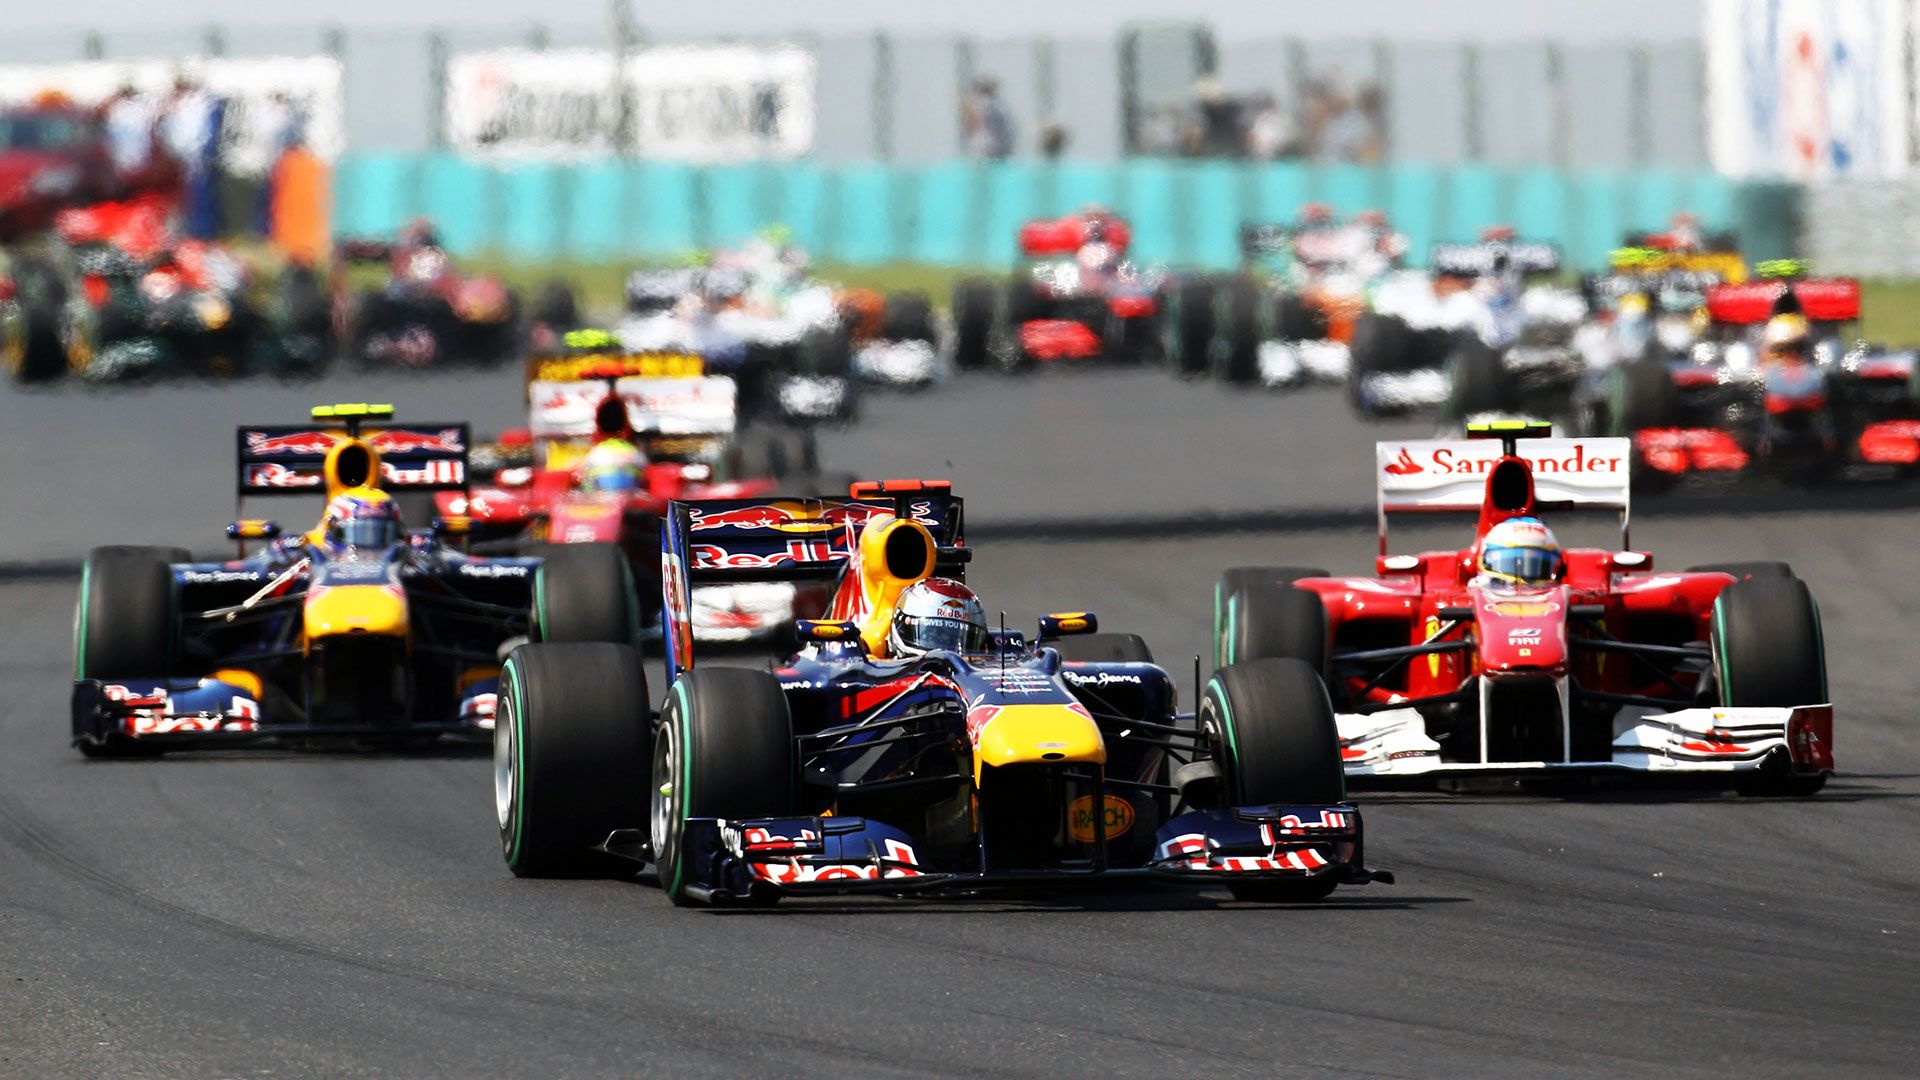 Formula 1 Hd: HD Wallpapers 2010 Formula 1 Grand Prix Of Hungary